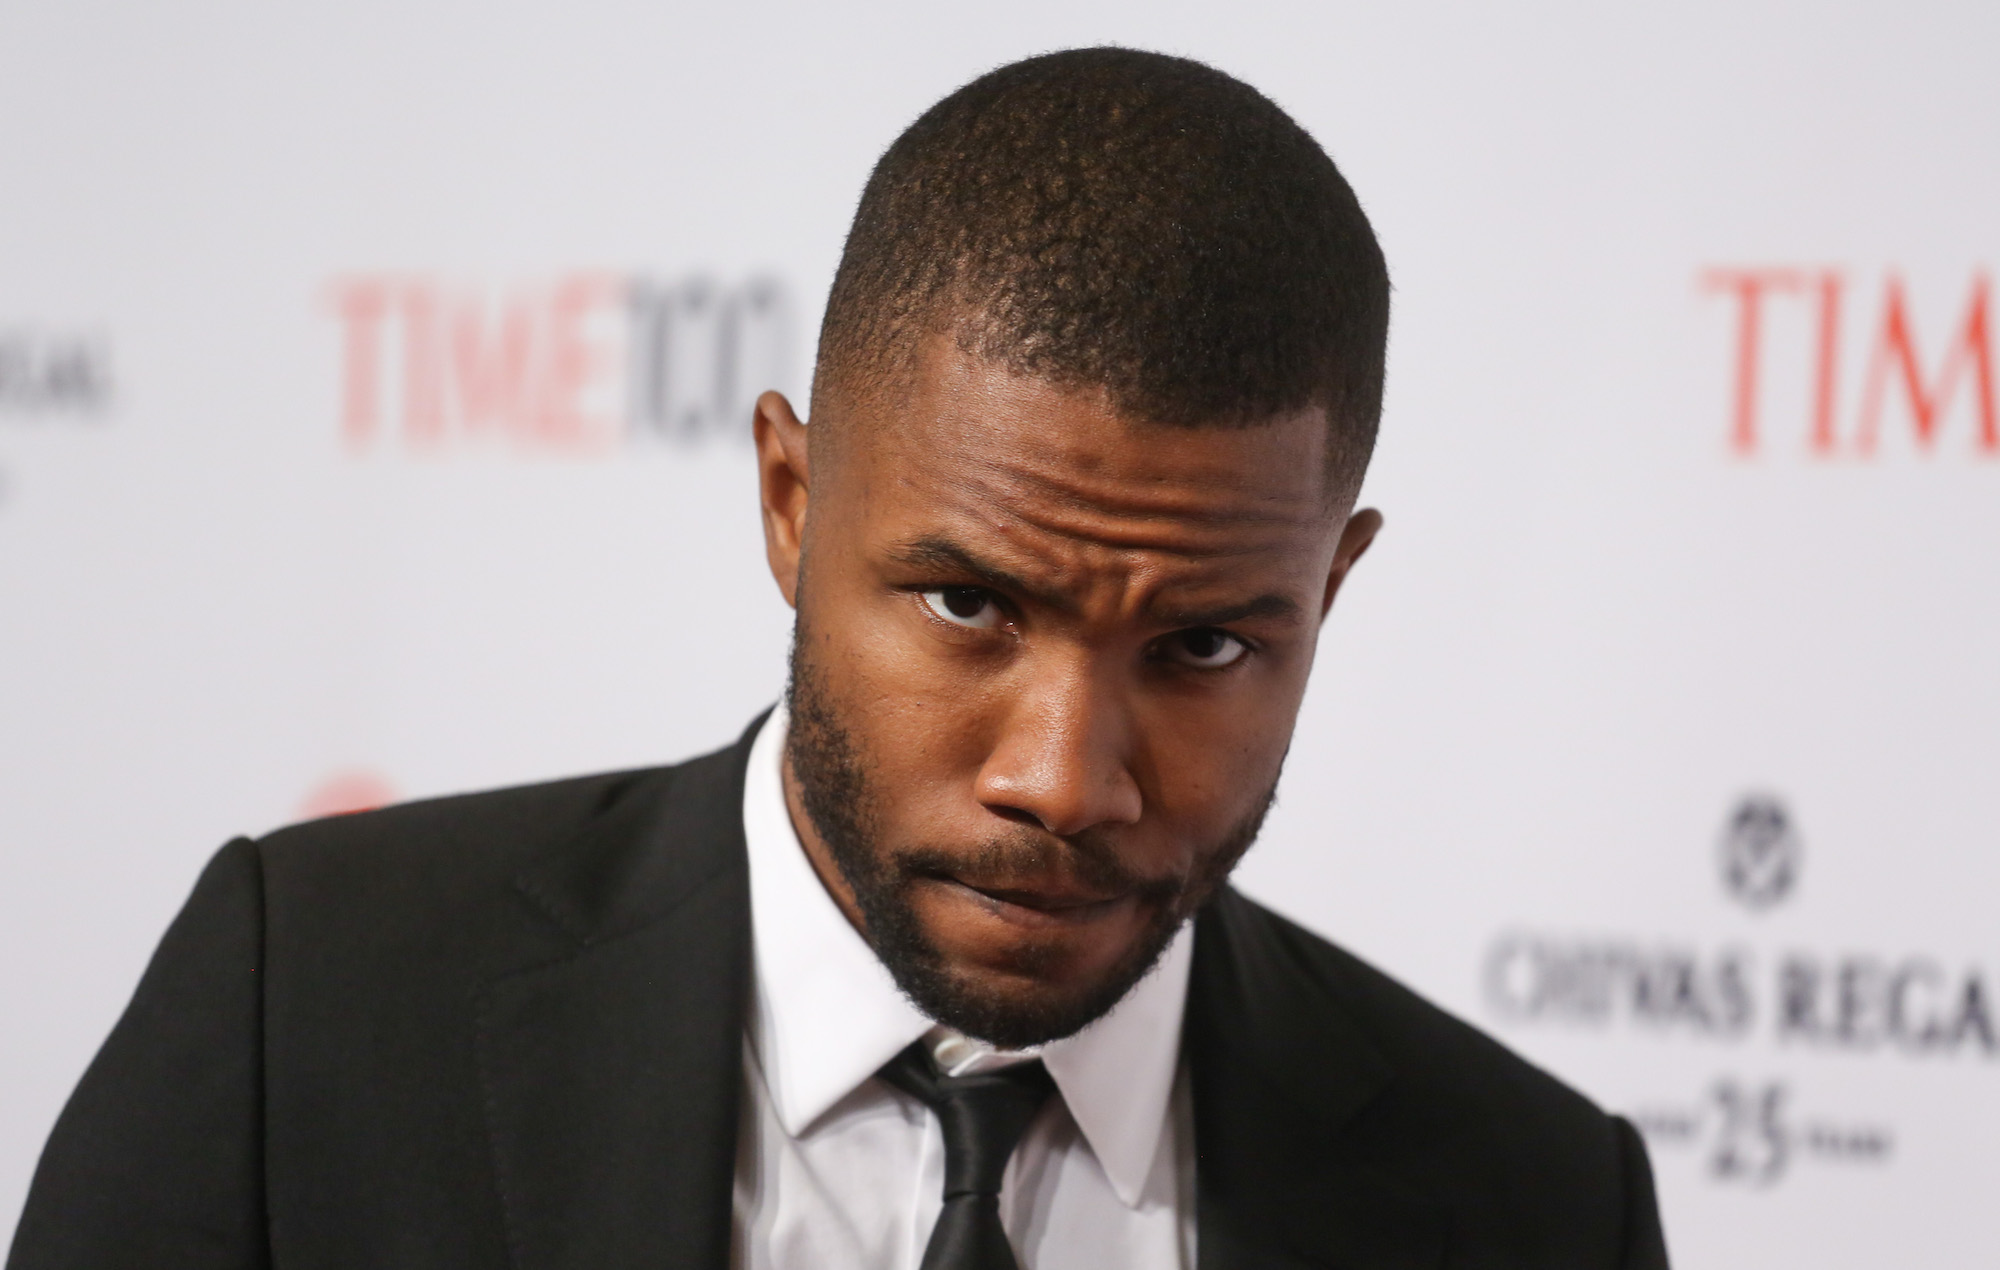 Frank Ocean posts cryptic message hinting at new music ...